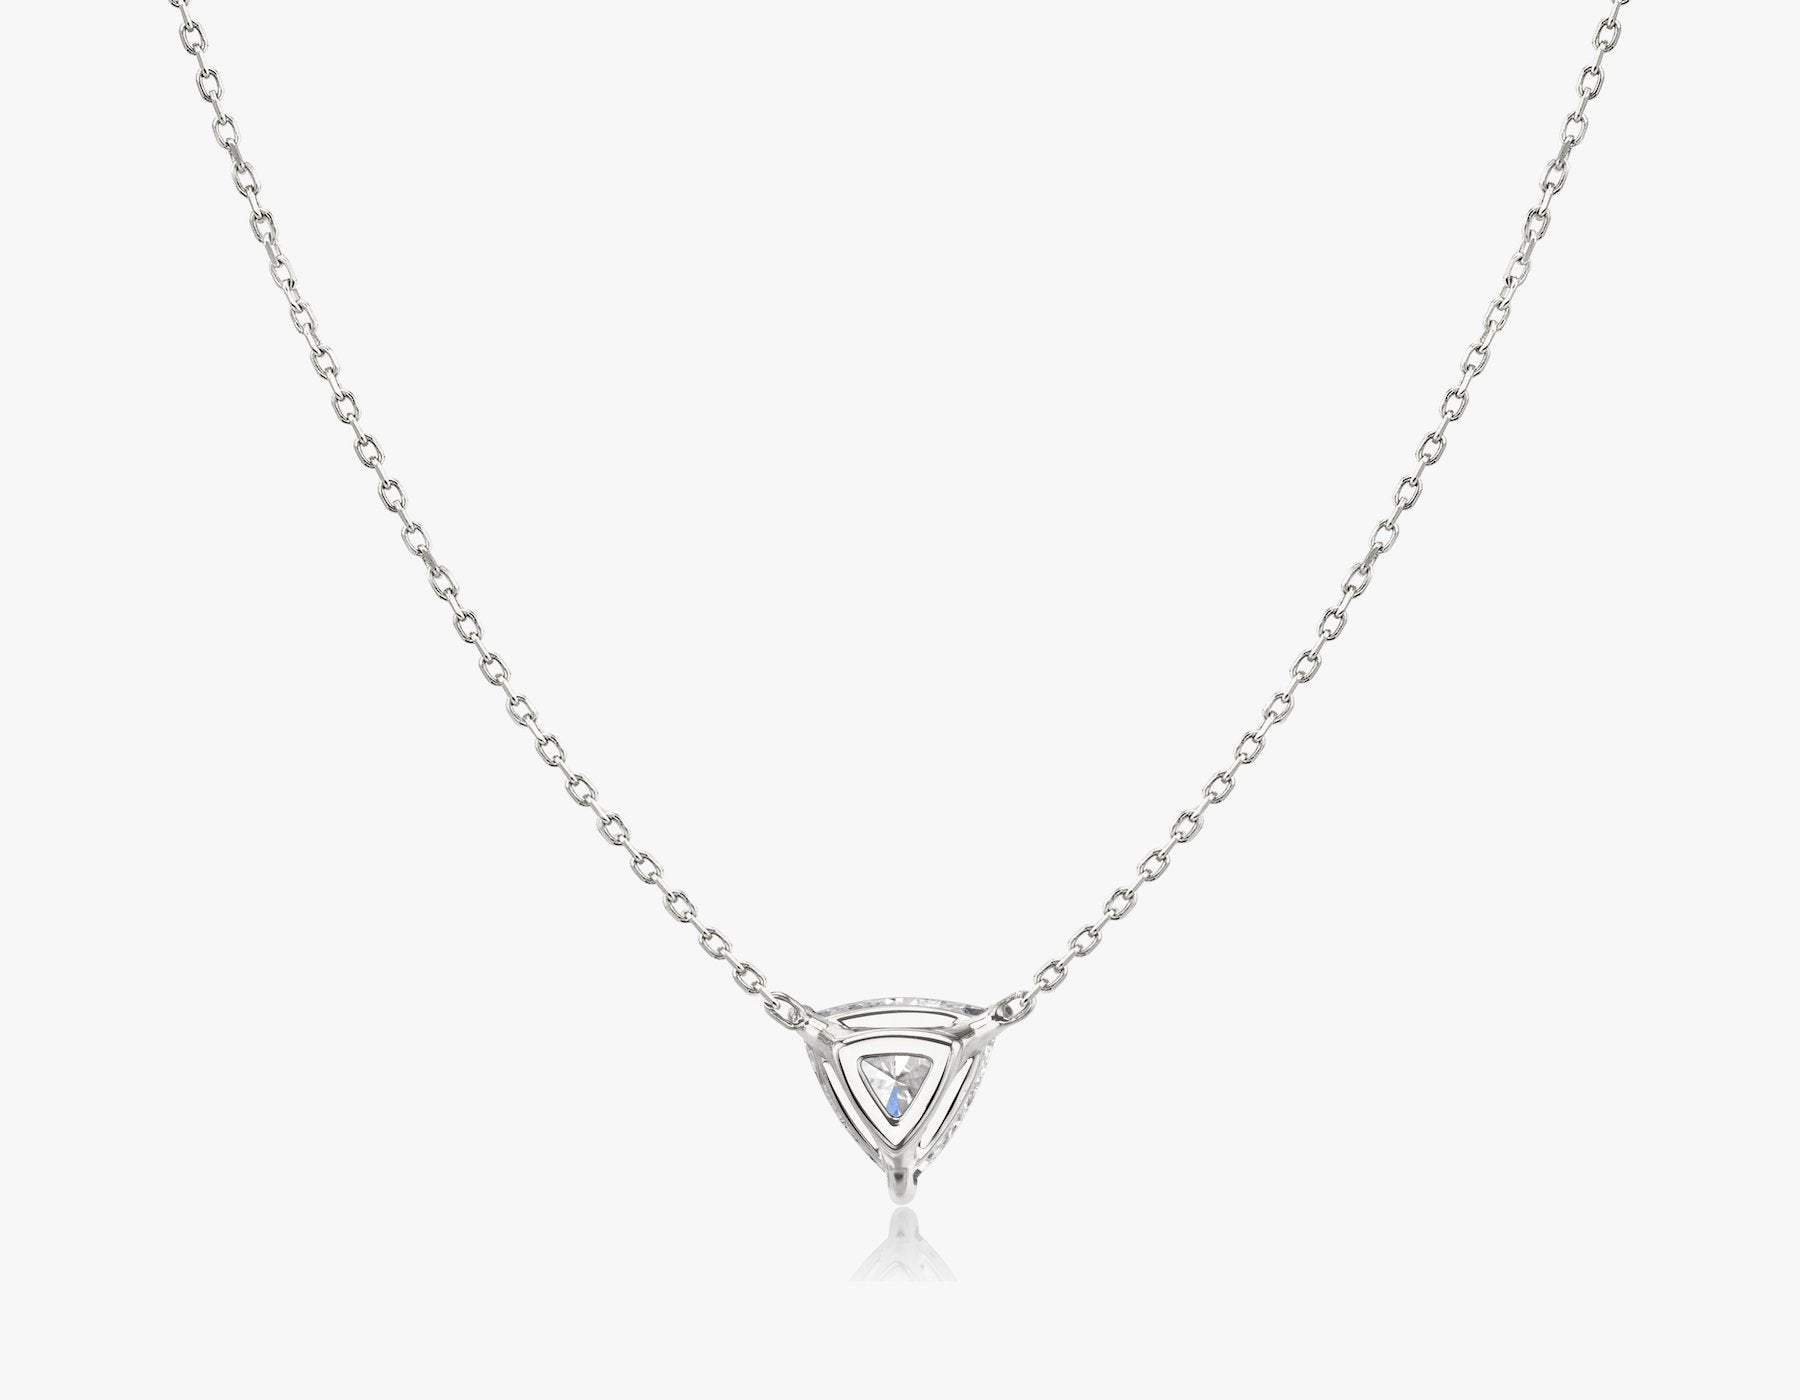 Vrai 14k solid gold Solitaire Trillion Diamond Necklace sustainably created triangle diamond prong set on simple chain back view, 14K White Gold